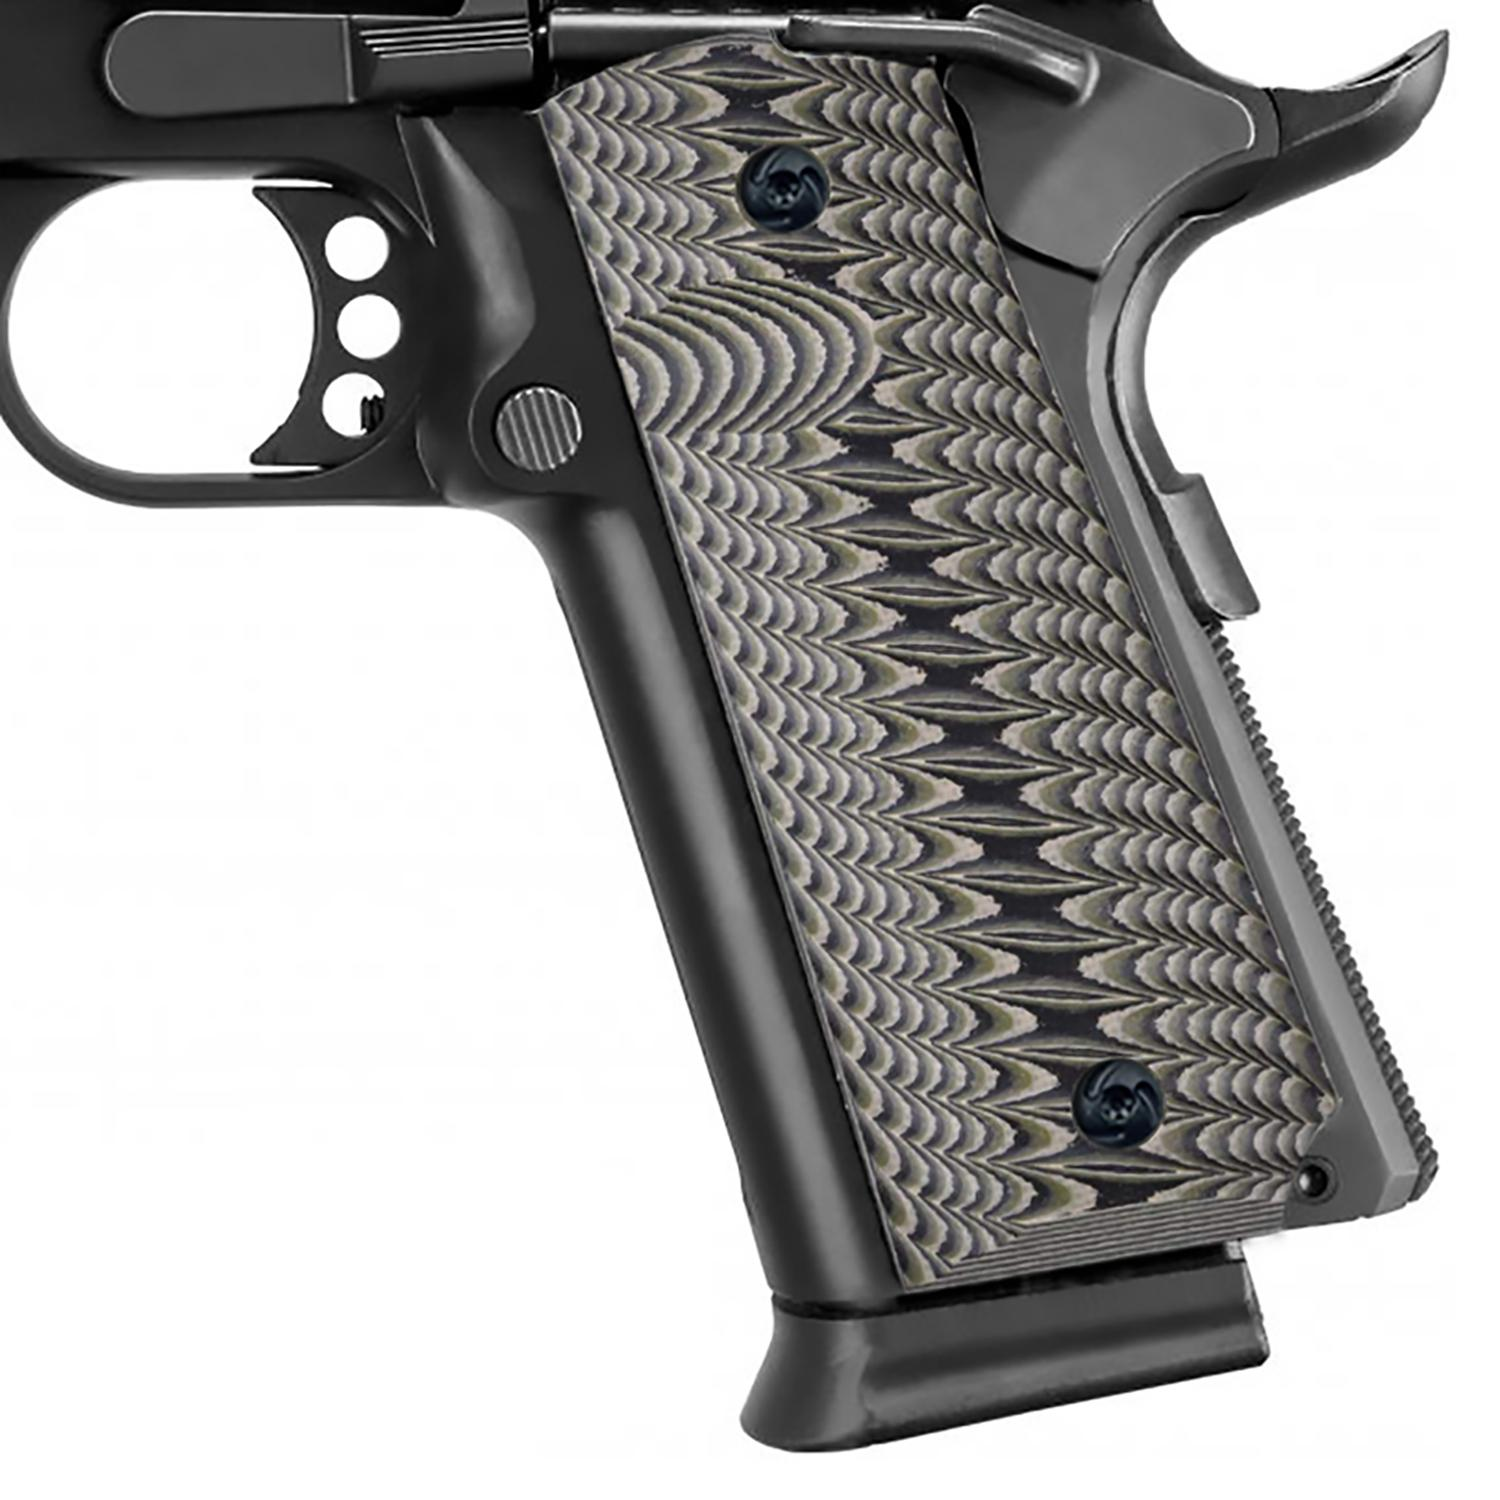 Guuun 1911 Grips Full Size Ambi Custom G10 Grip Claw Mark Texture